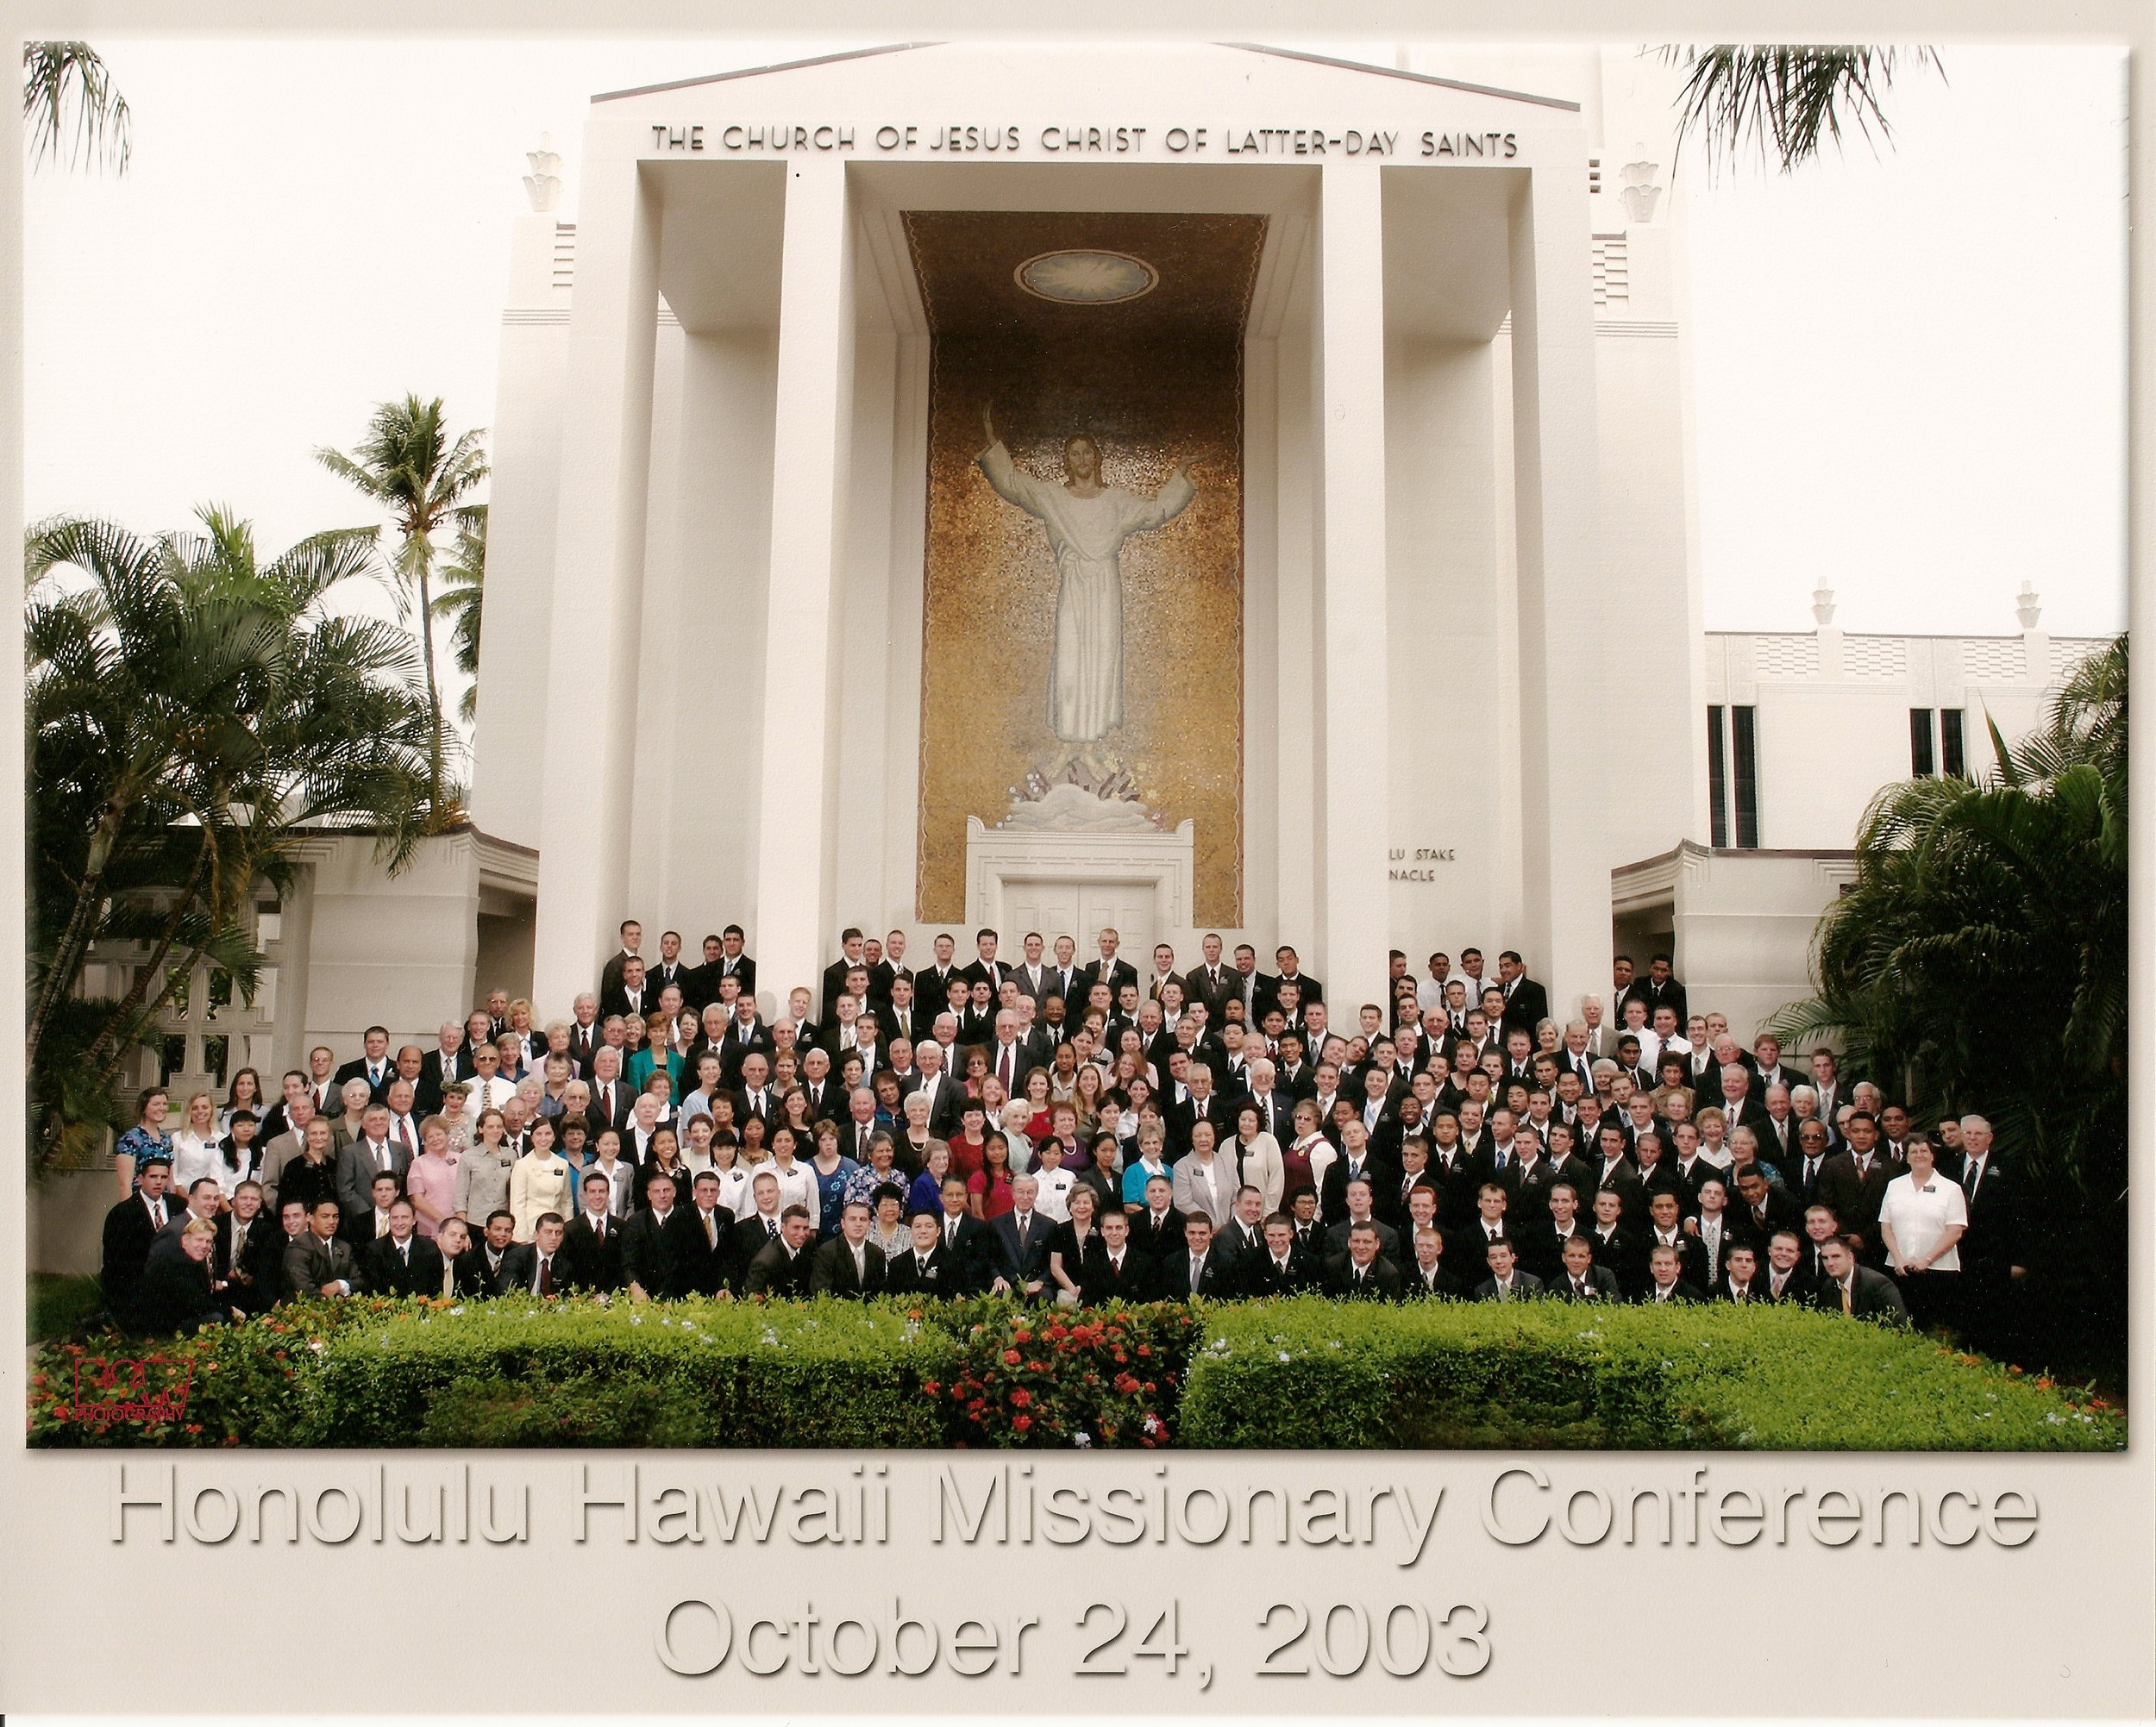 Every missionary in the mission. Taken when President Hinkley visited.